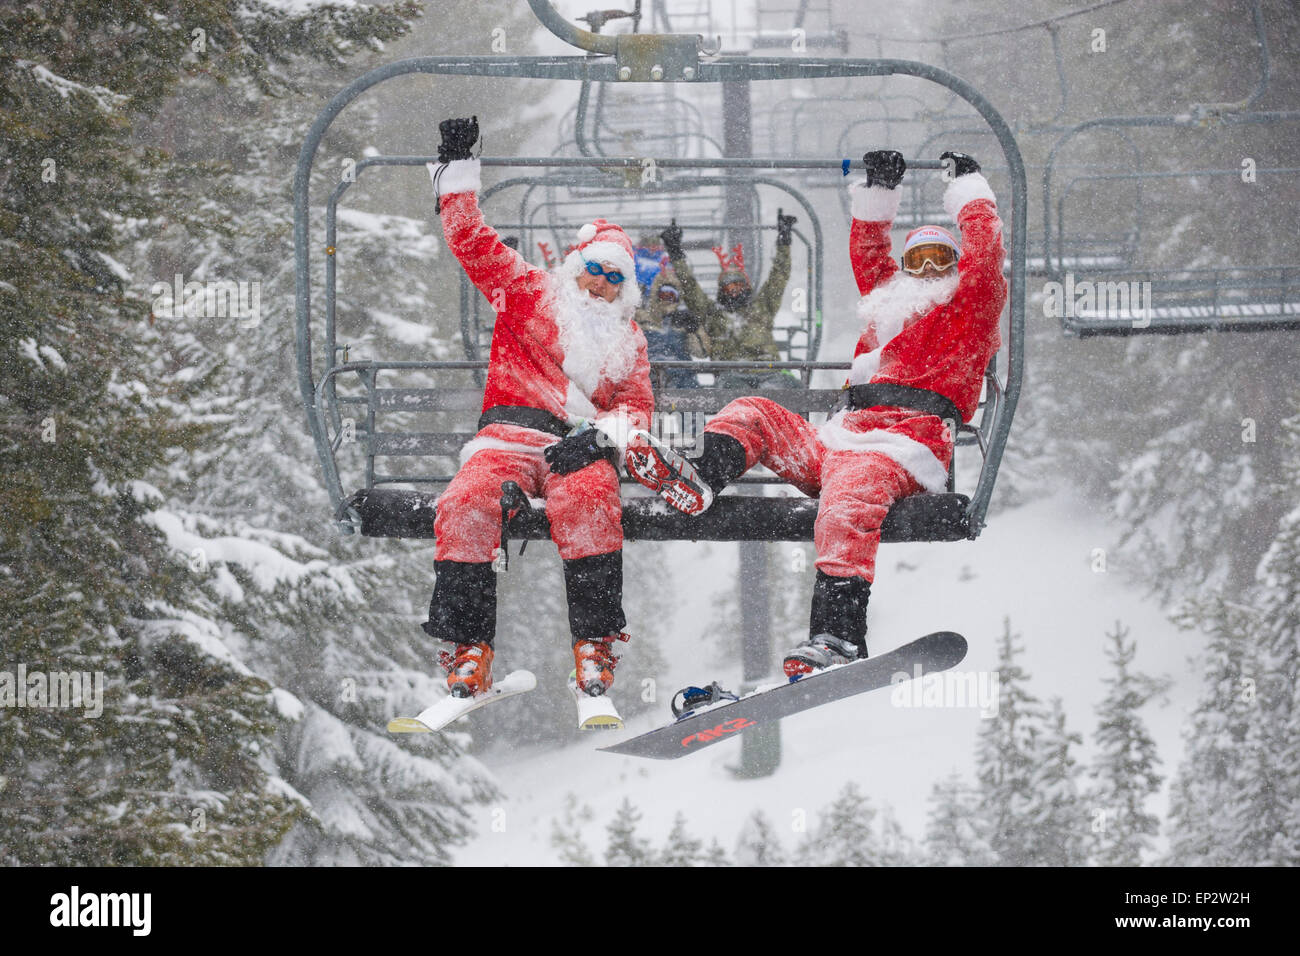 Santa ski day is a tradition at Mt. Rose Ski Tahoe, and other ski resorts in the Sierra Nevada mountains surrounding Stock Photo